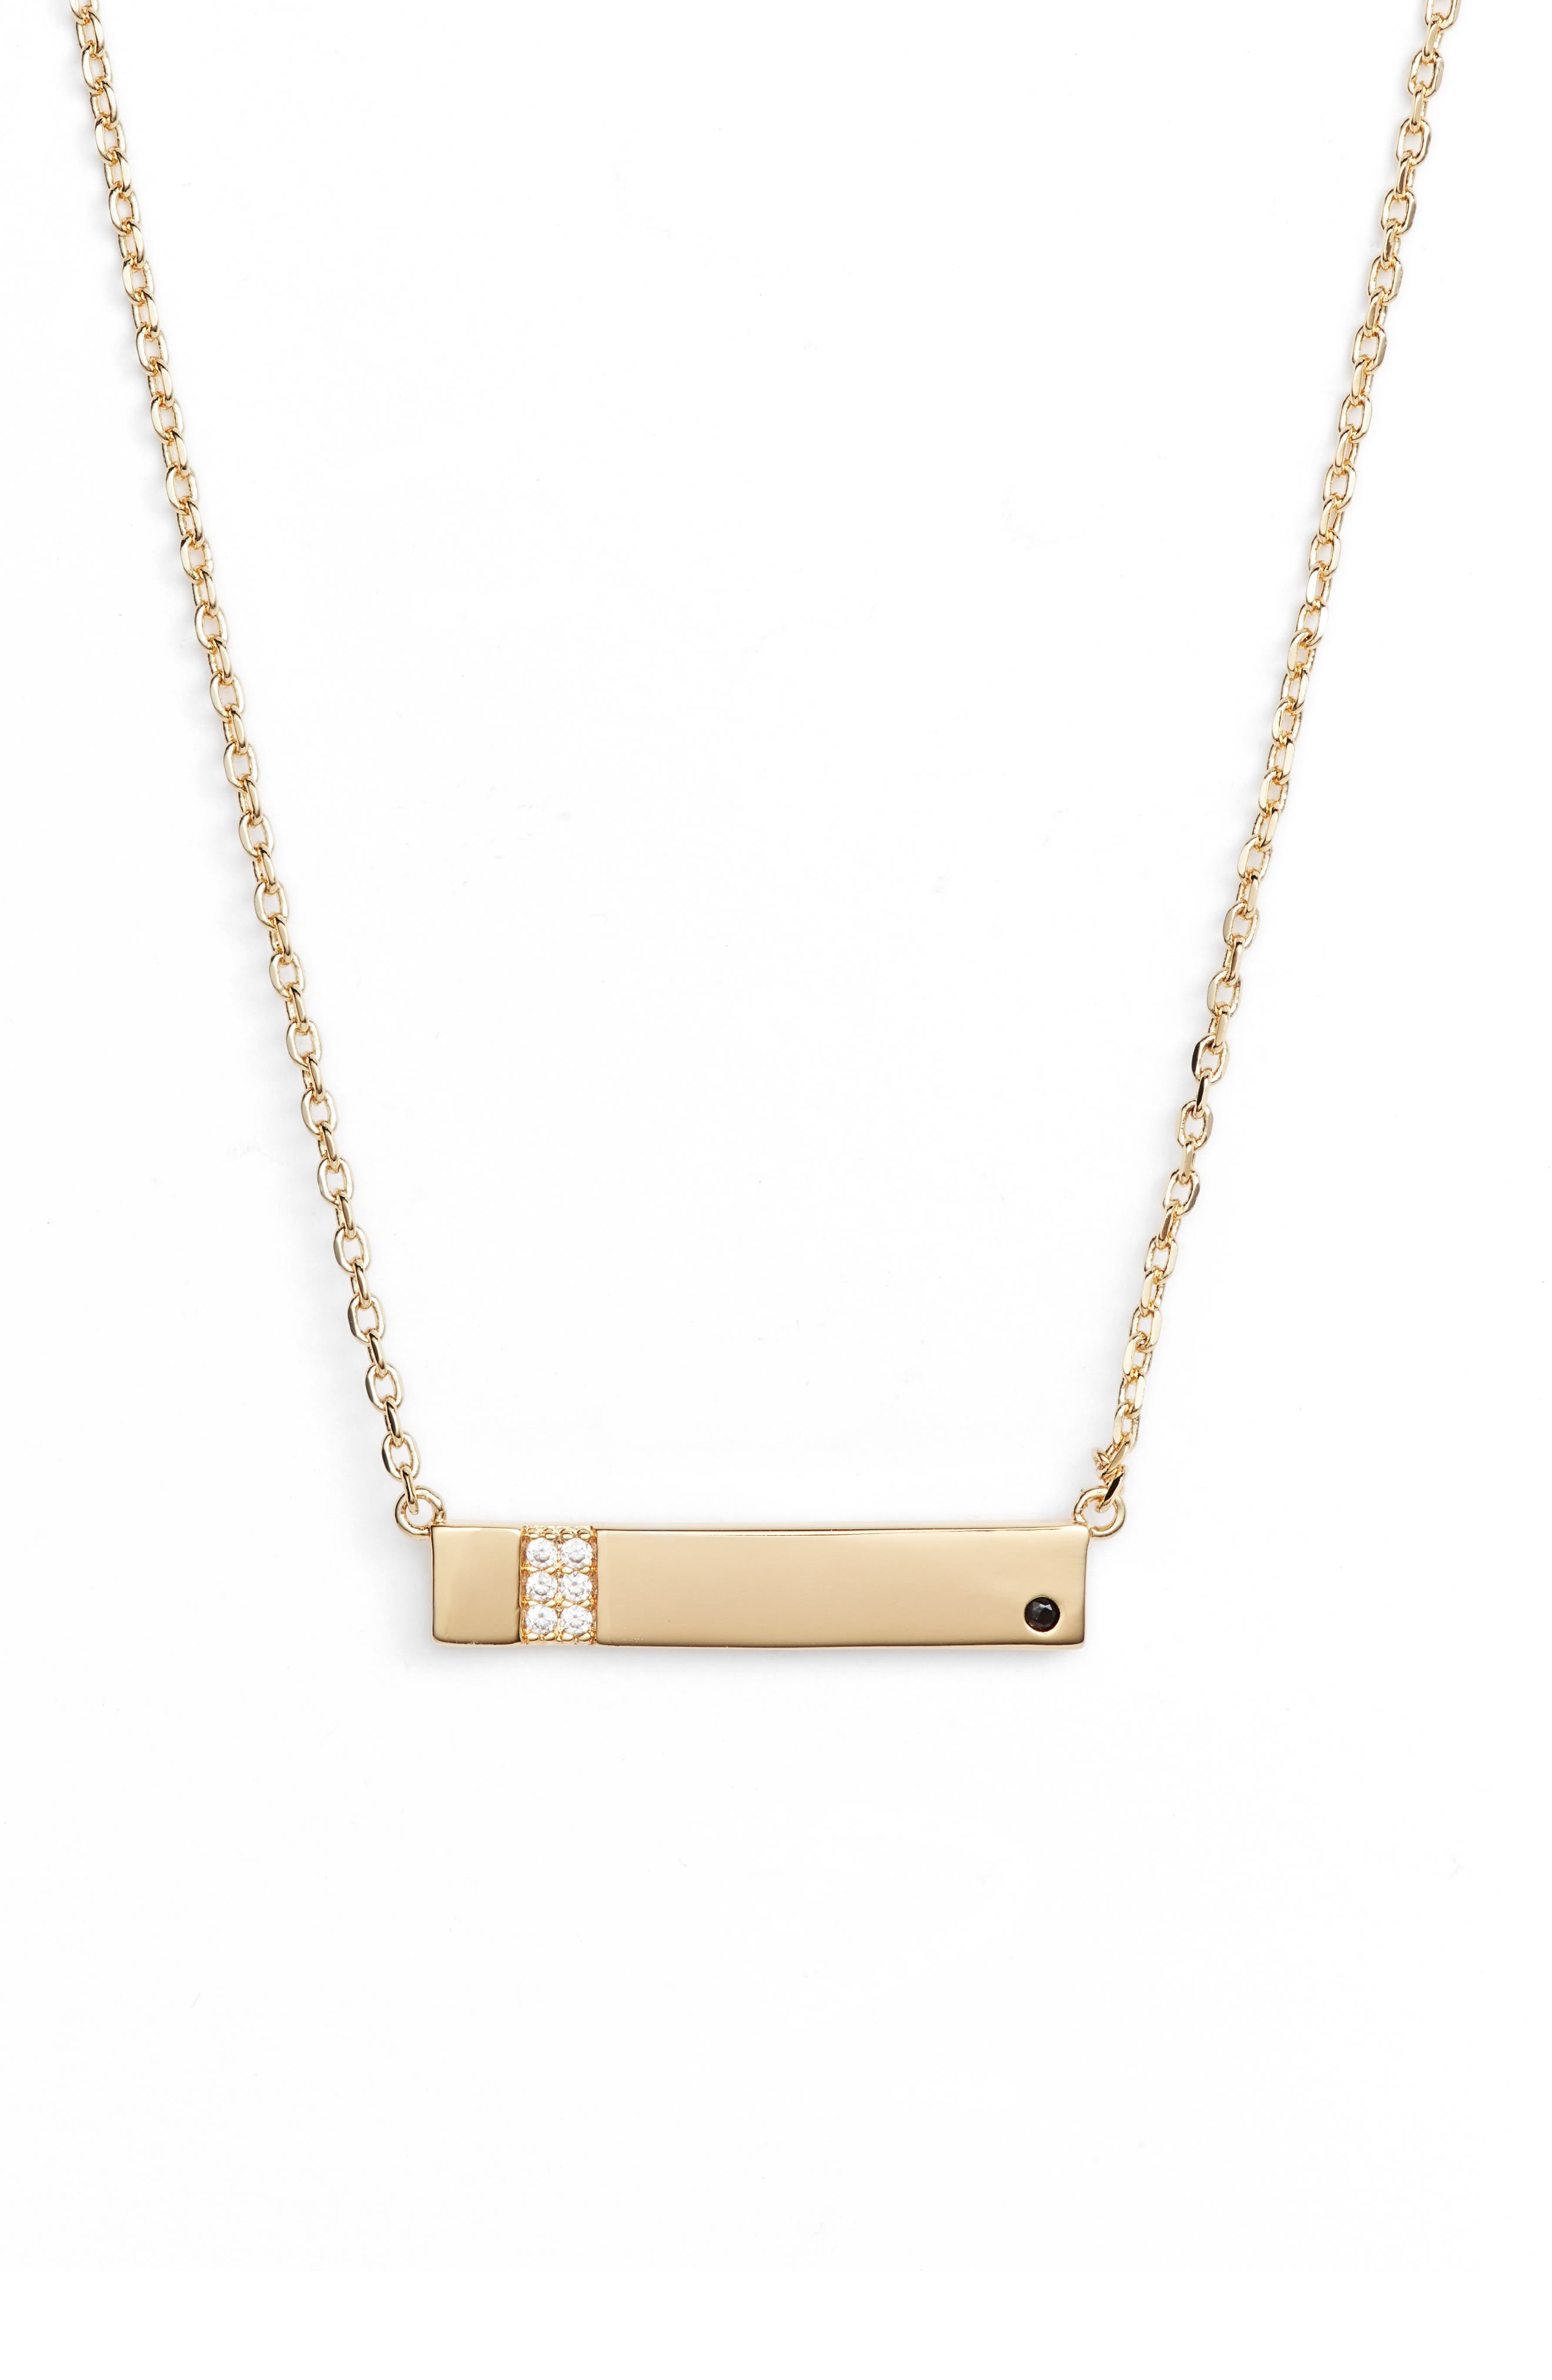 Lulu DK x We Wore What Horizontal Bar Necklace